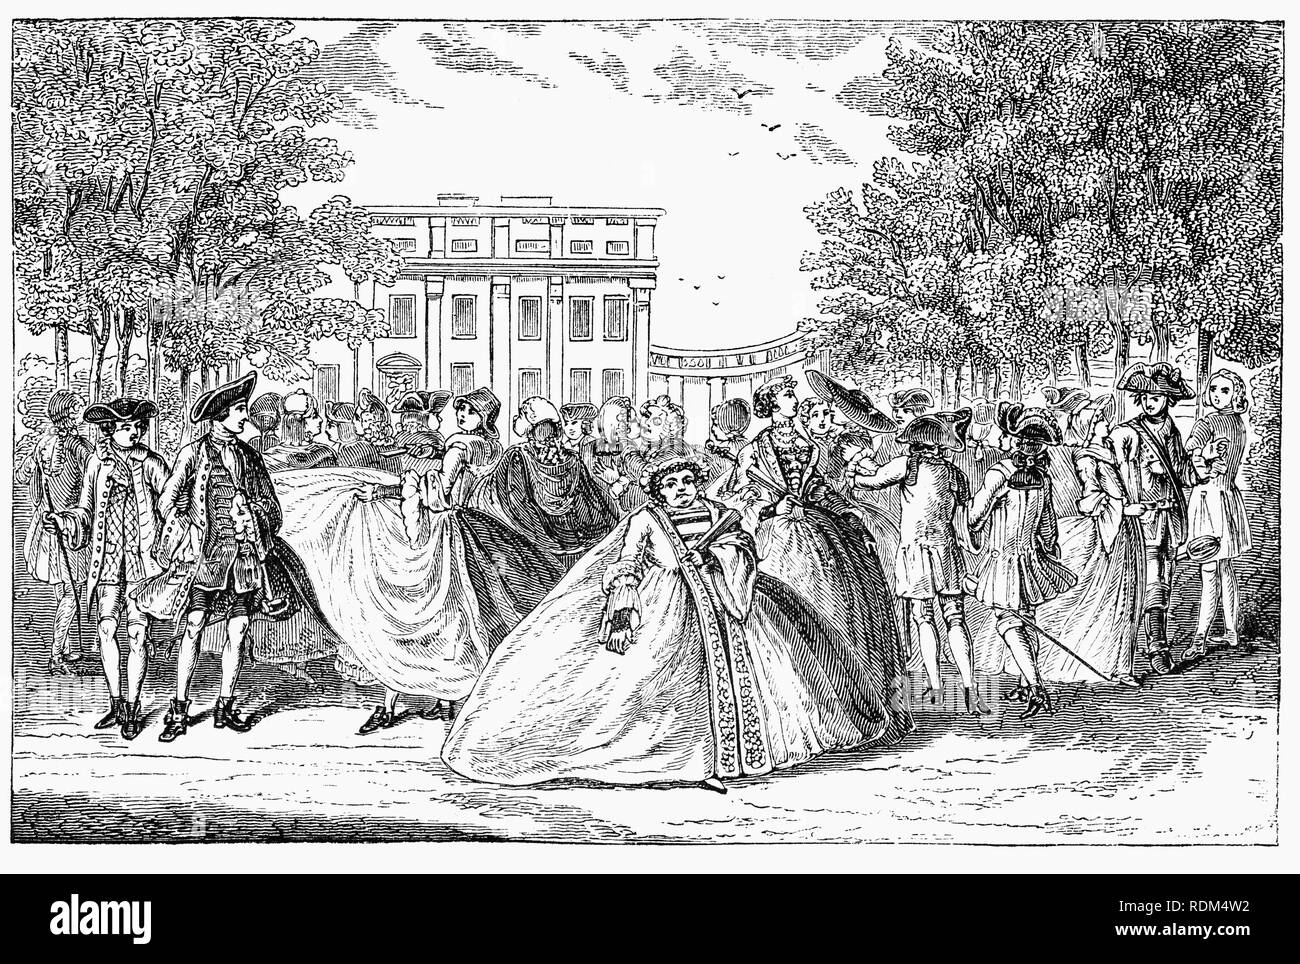 During the 18th Century, Alamode, was once the name for a fabric, but in this case meant 'in the fashion'. The gentry promenading in 1745 through St James Park in the City of London, England. Stock Photo